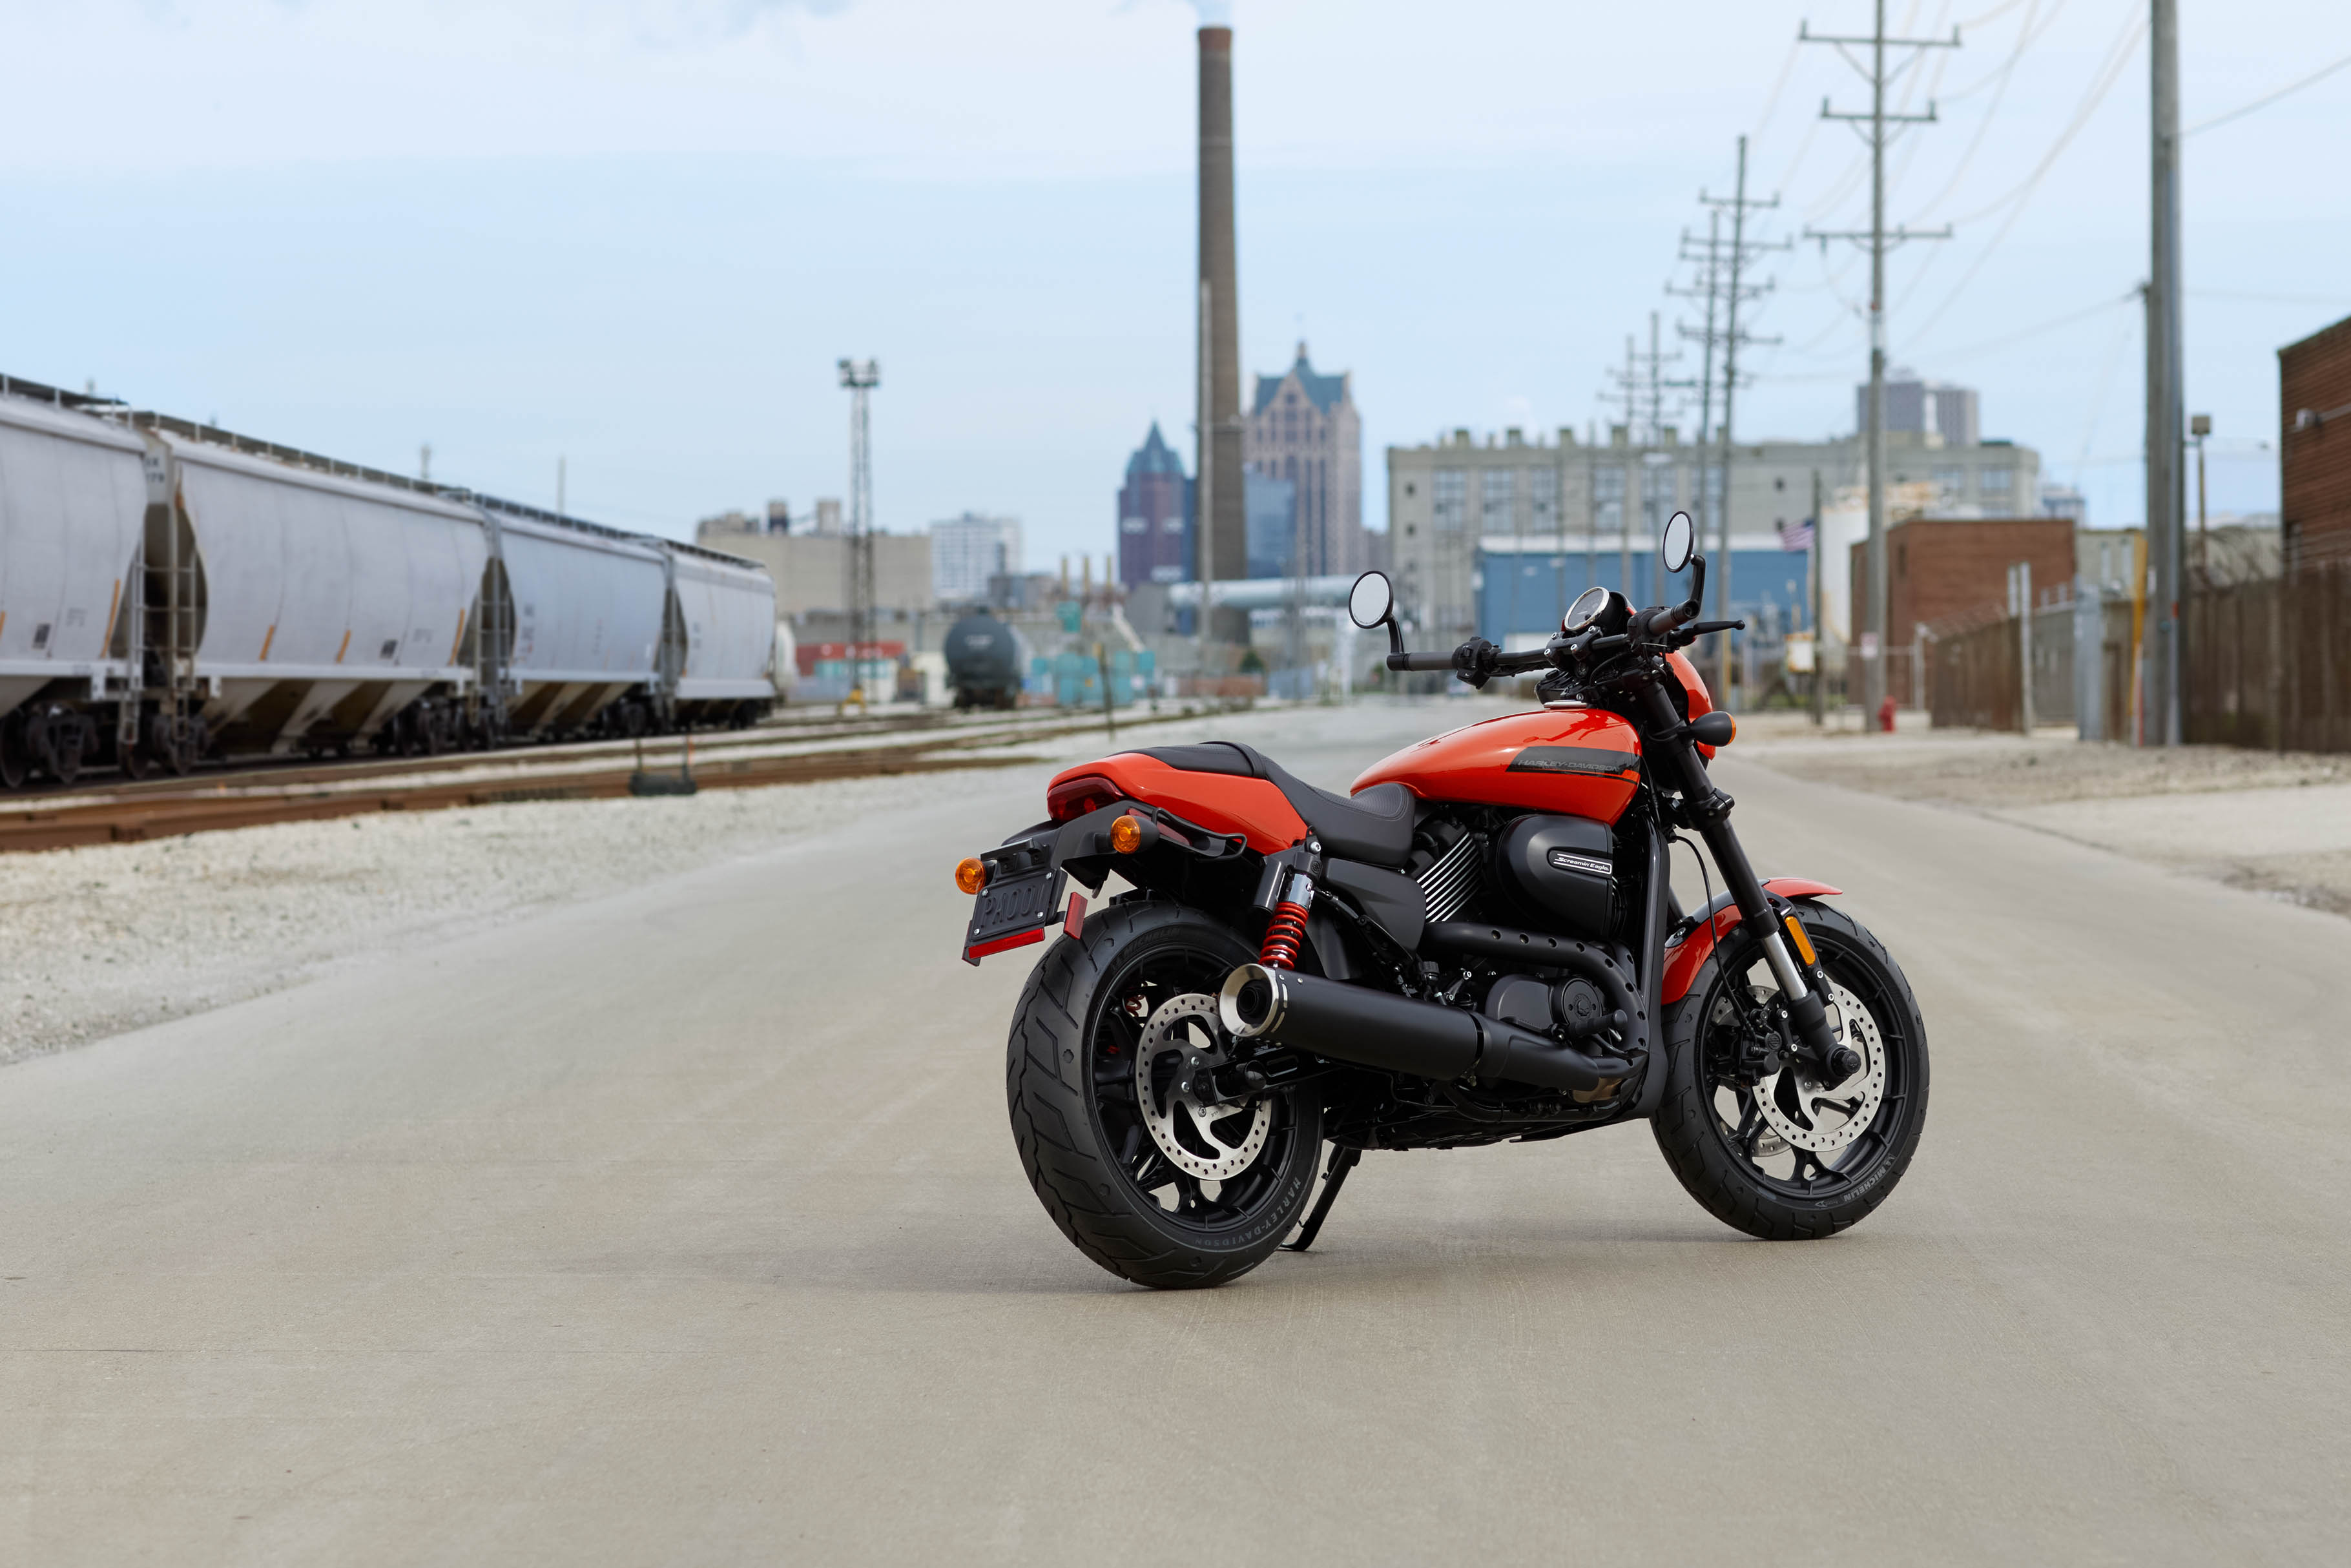 2020 H-D Street Rod Motorcycle